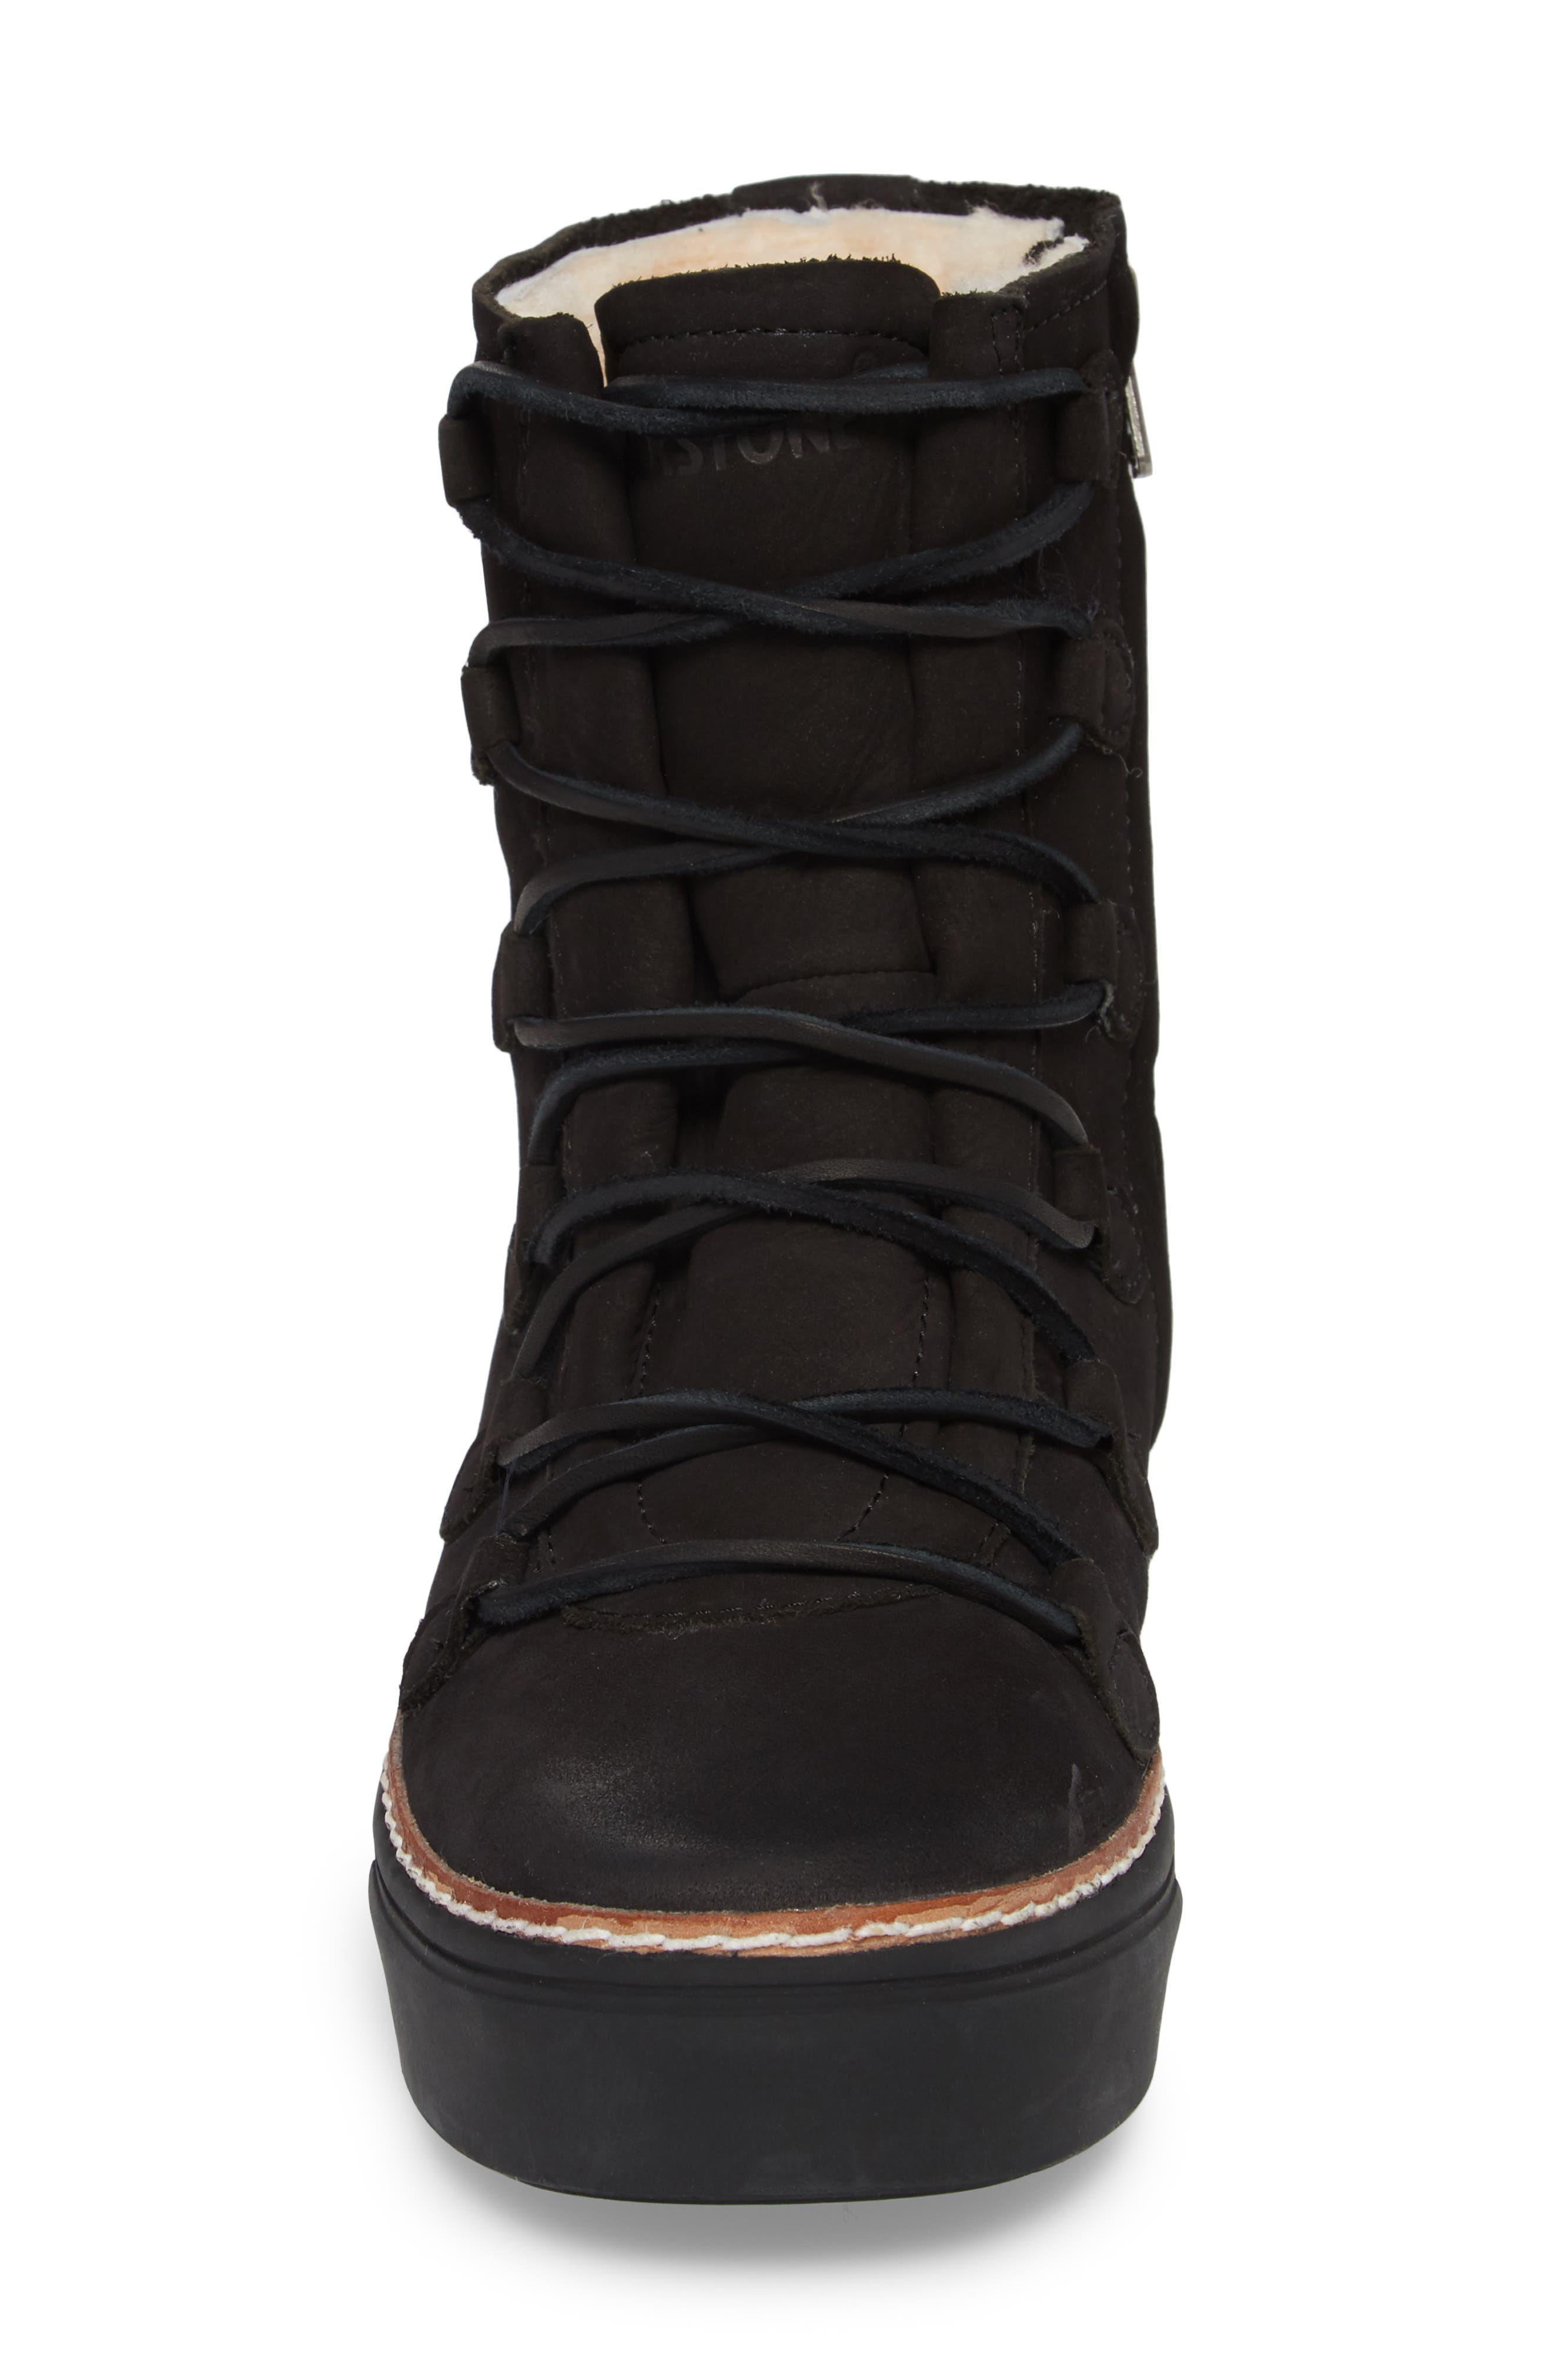 OL26 Genuine Shearling Lined Lace-Up Bootie,                             Alternate thumbnail 4, color,                             Black Nubuck Leather